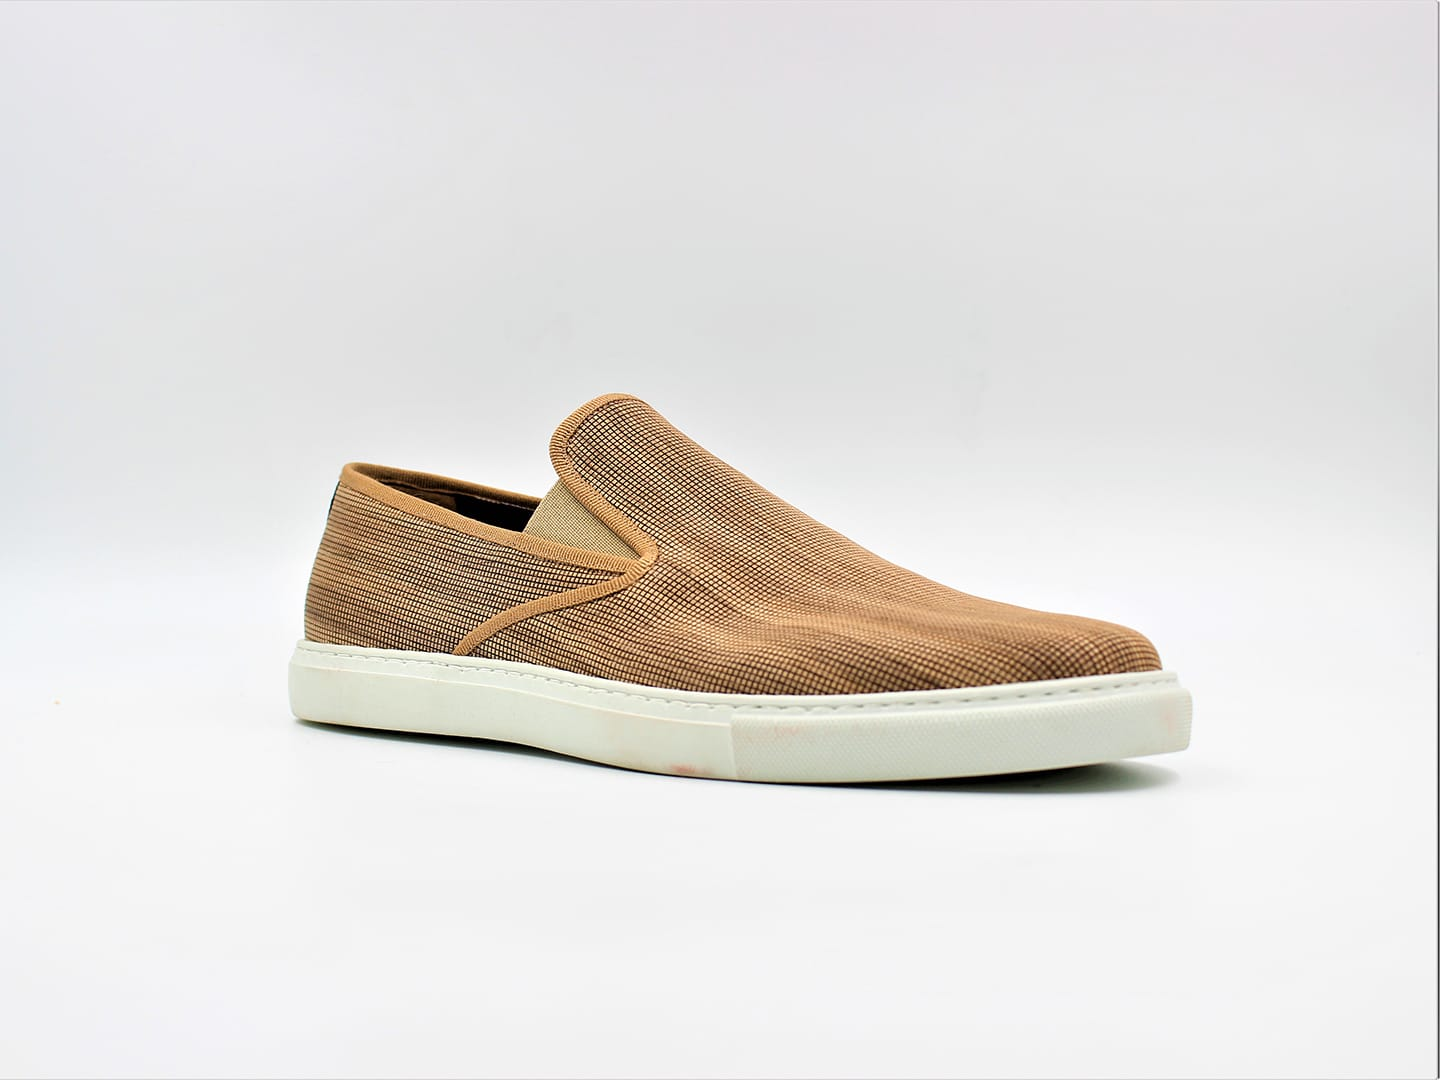 WOOWE - Pablo Sneaker made with FSC maple wood fiber and natural rubber sole.